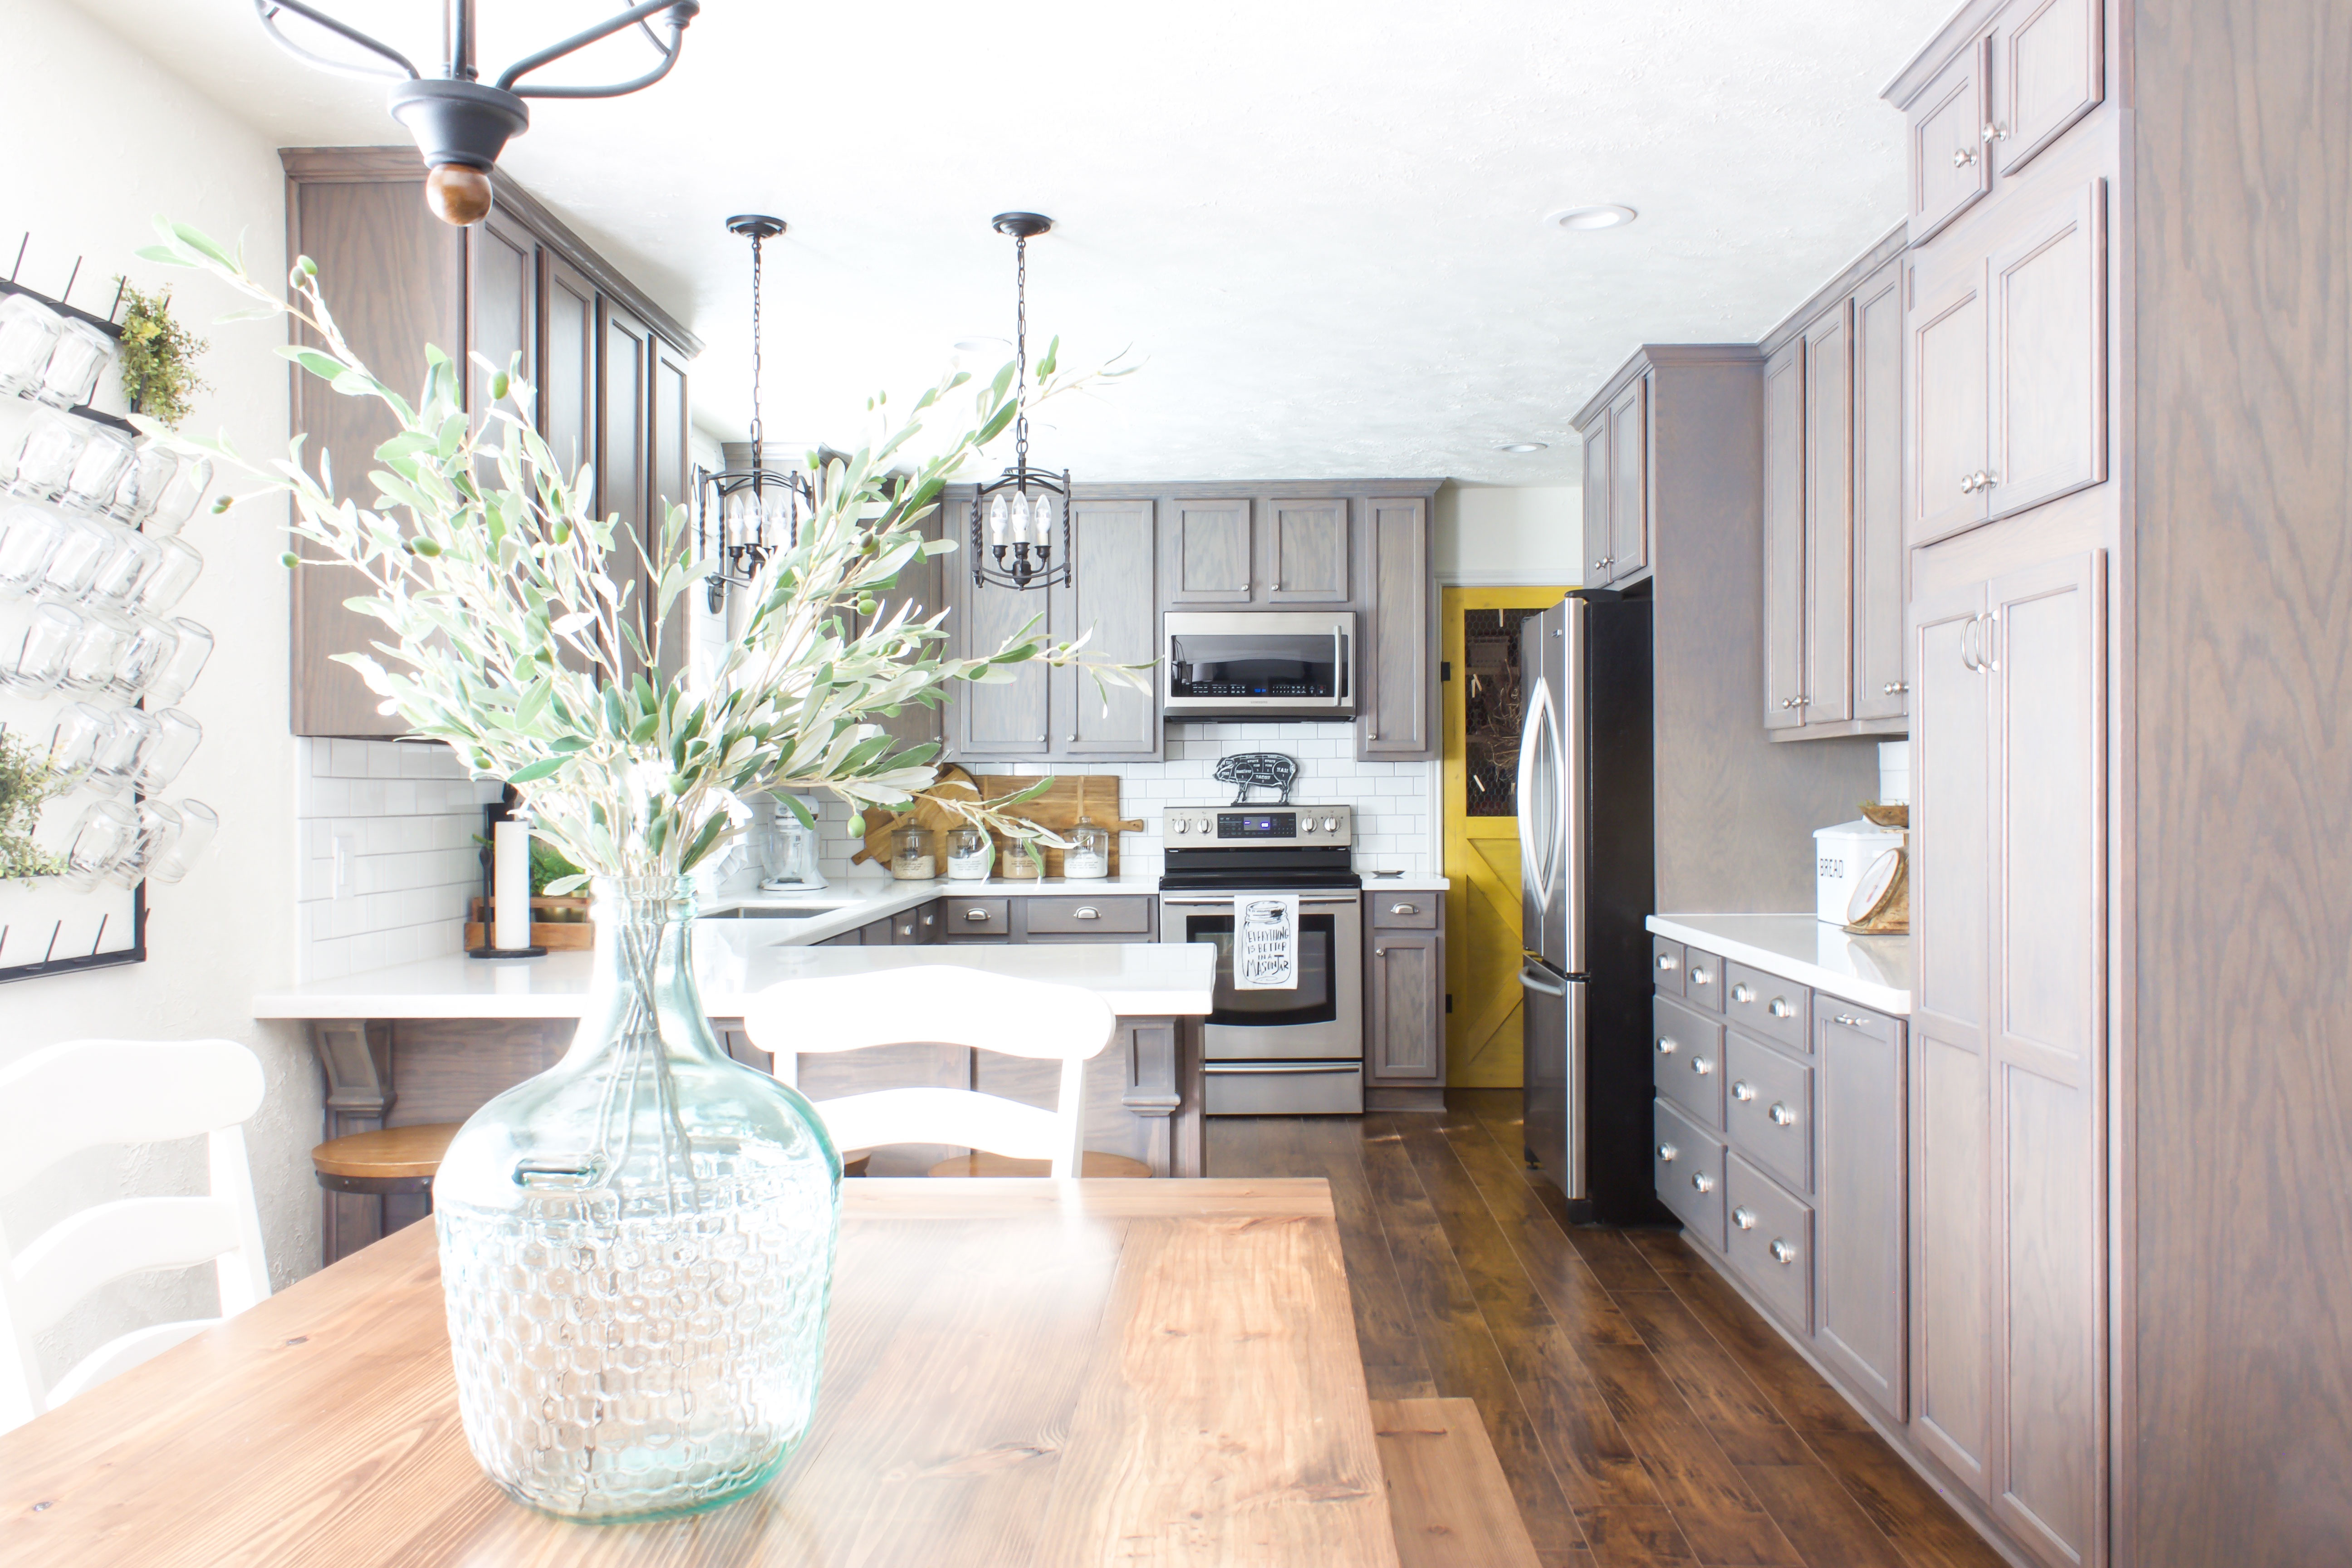 Kitchen-remodel-gray-cabinets